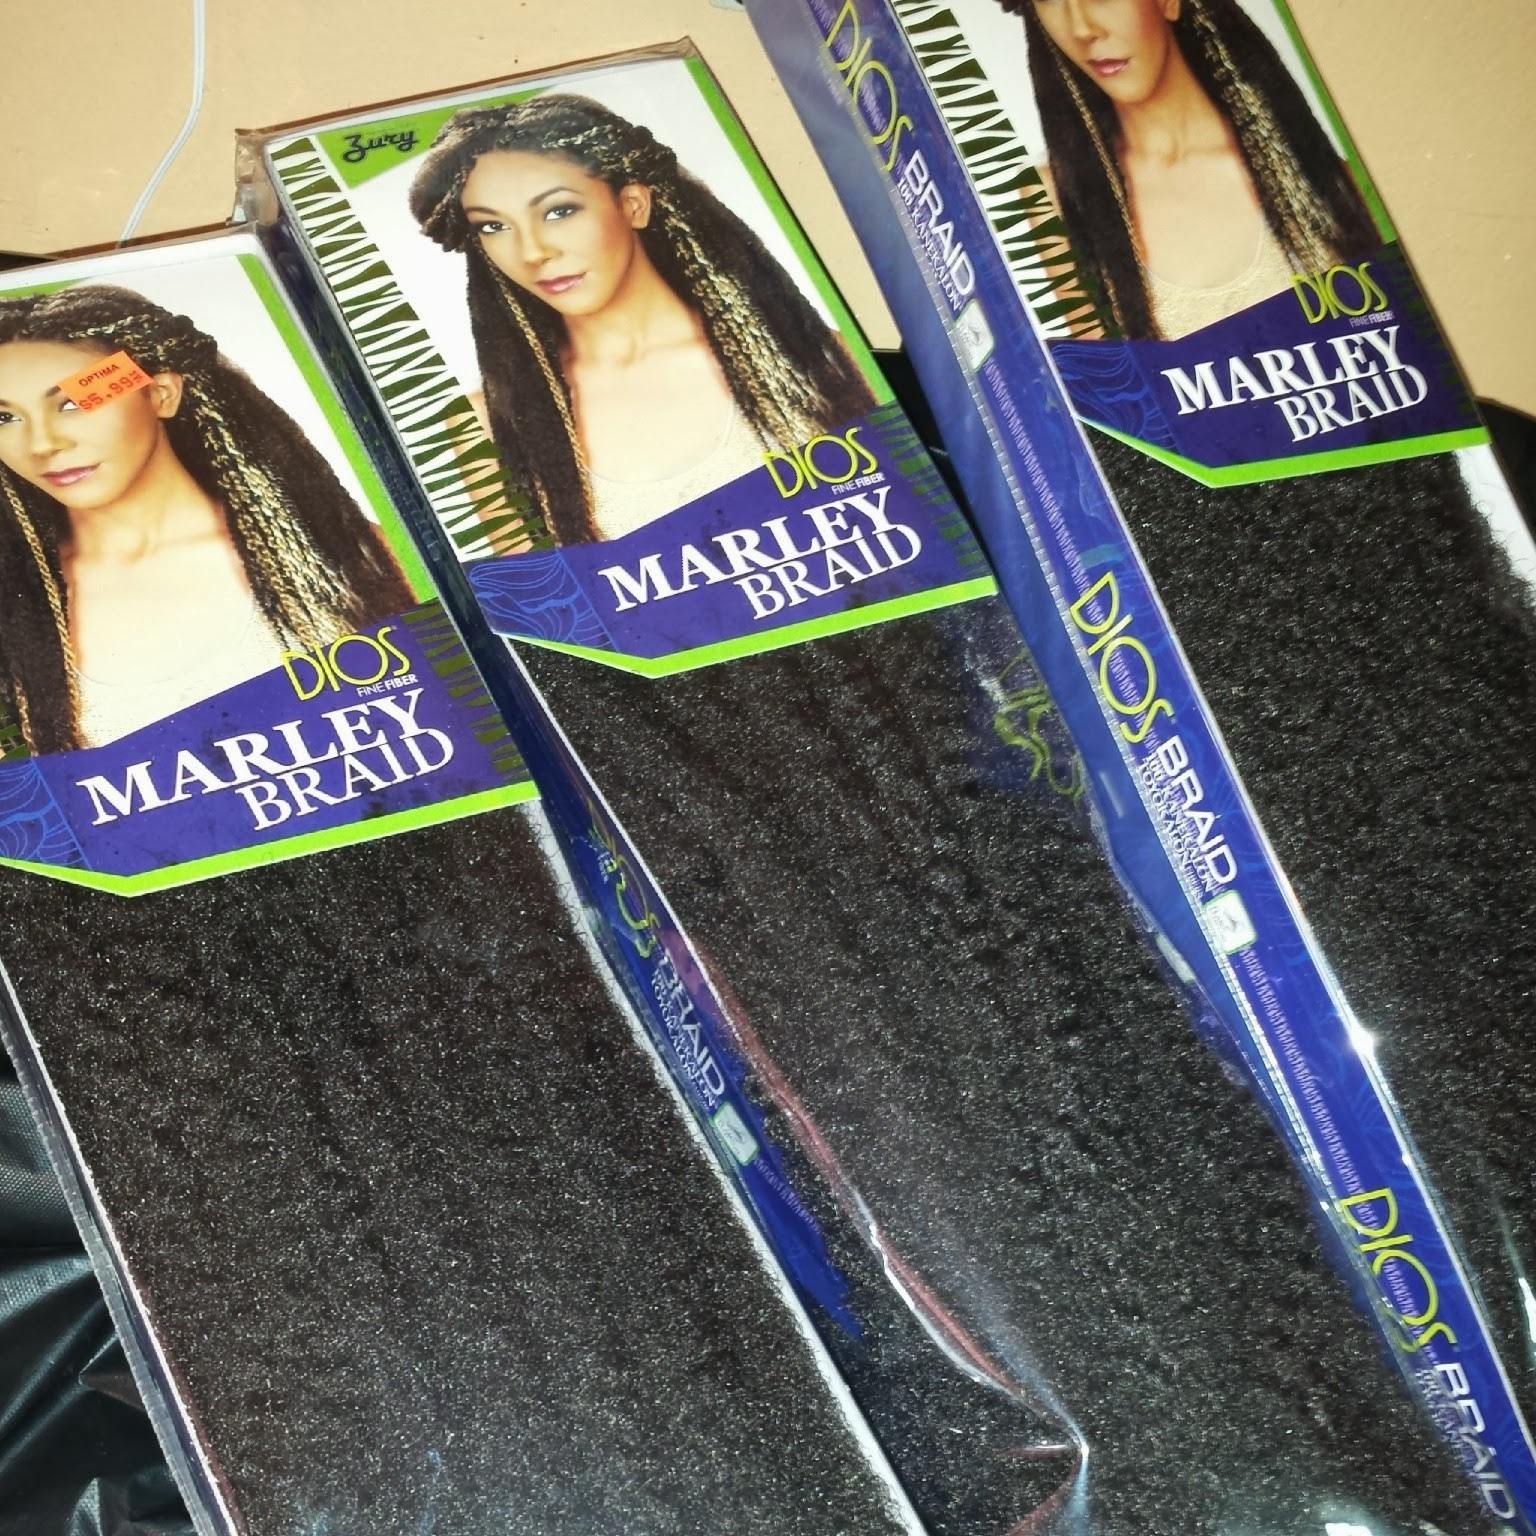 Crochet Marley Hair How Many Packs : How Many Packs Of Hair For Marley Twist hnczcyw.com